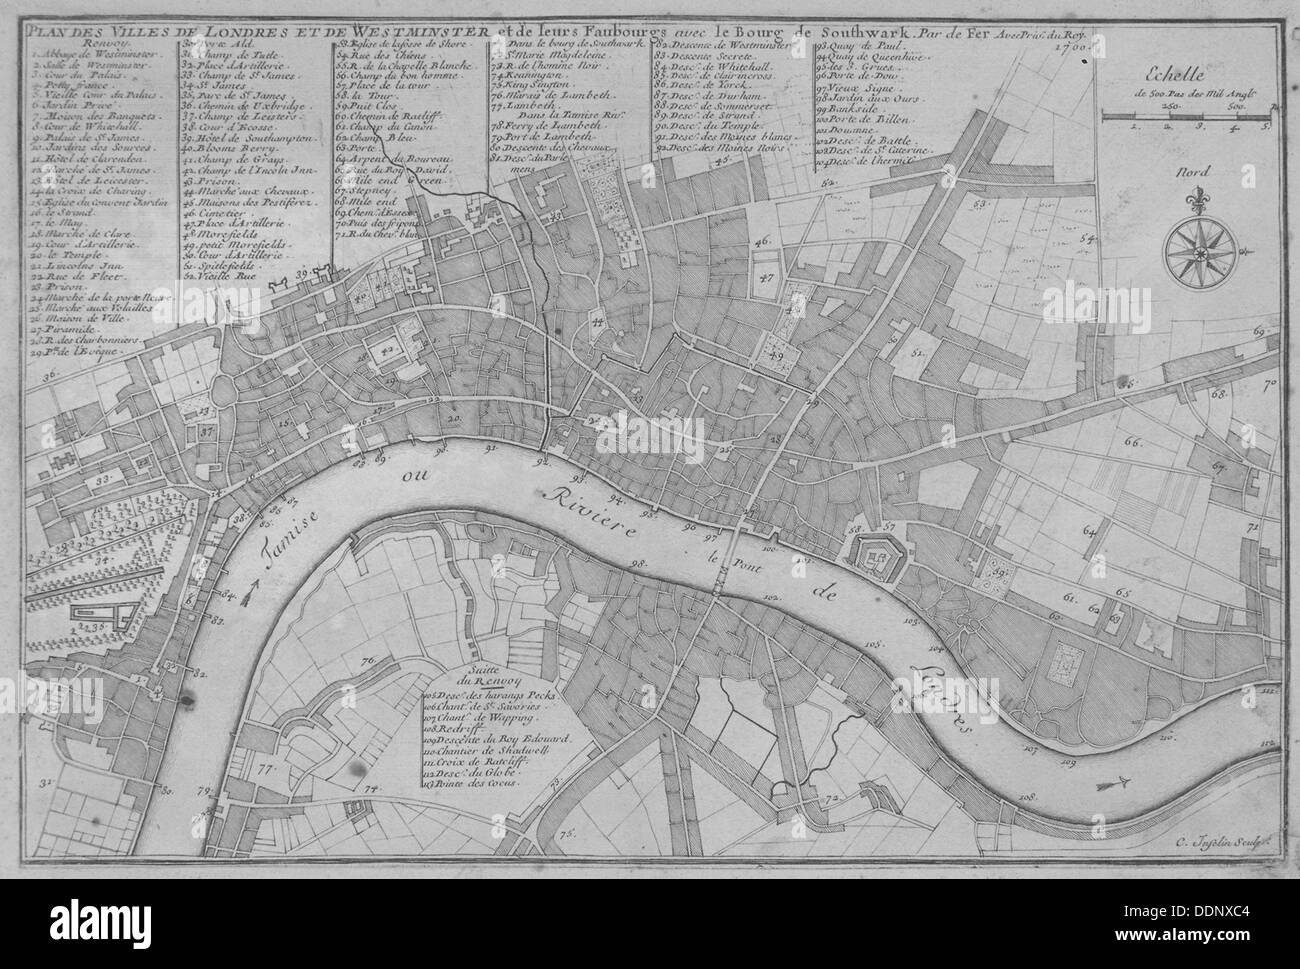 Map of the City of London the River Thames the City of